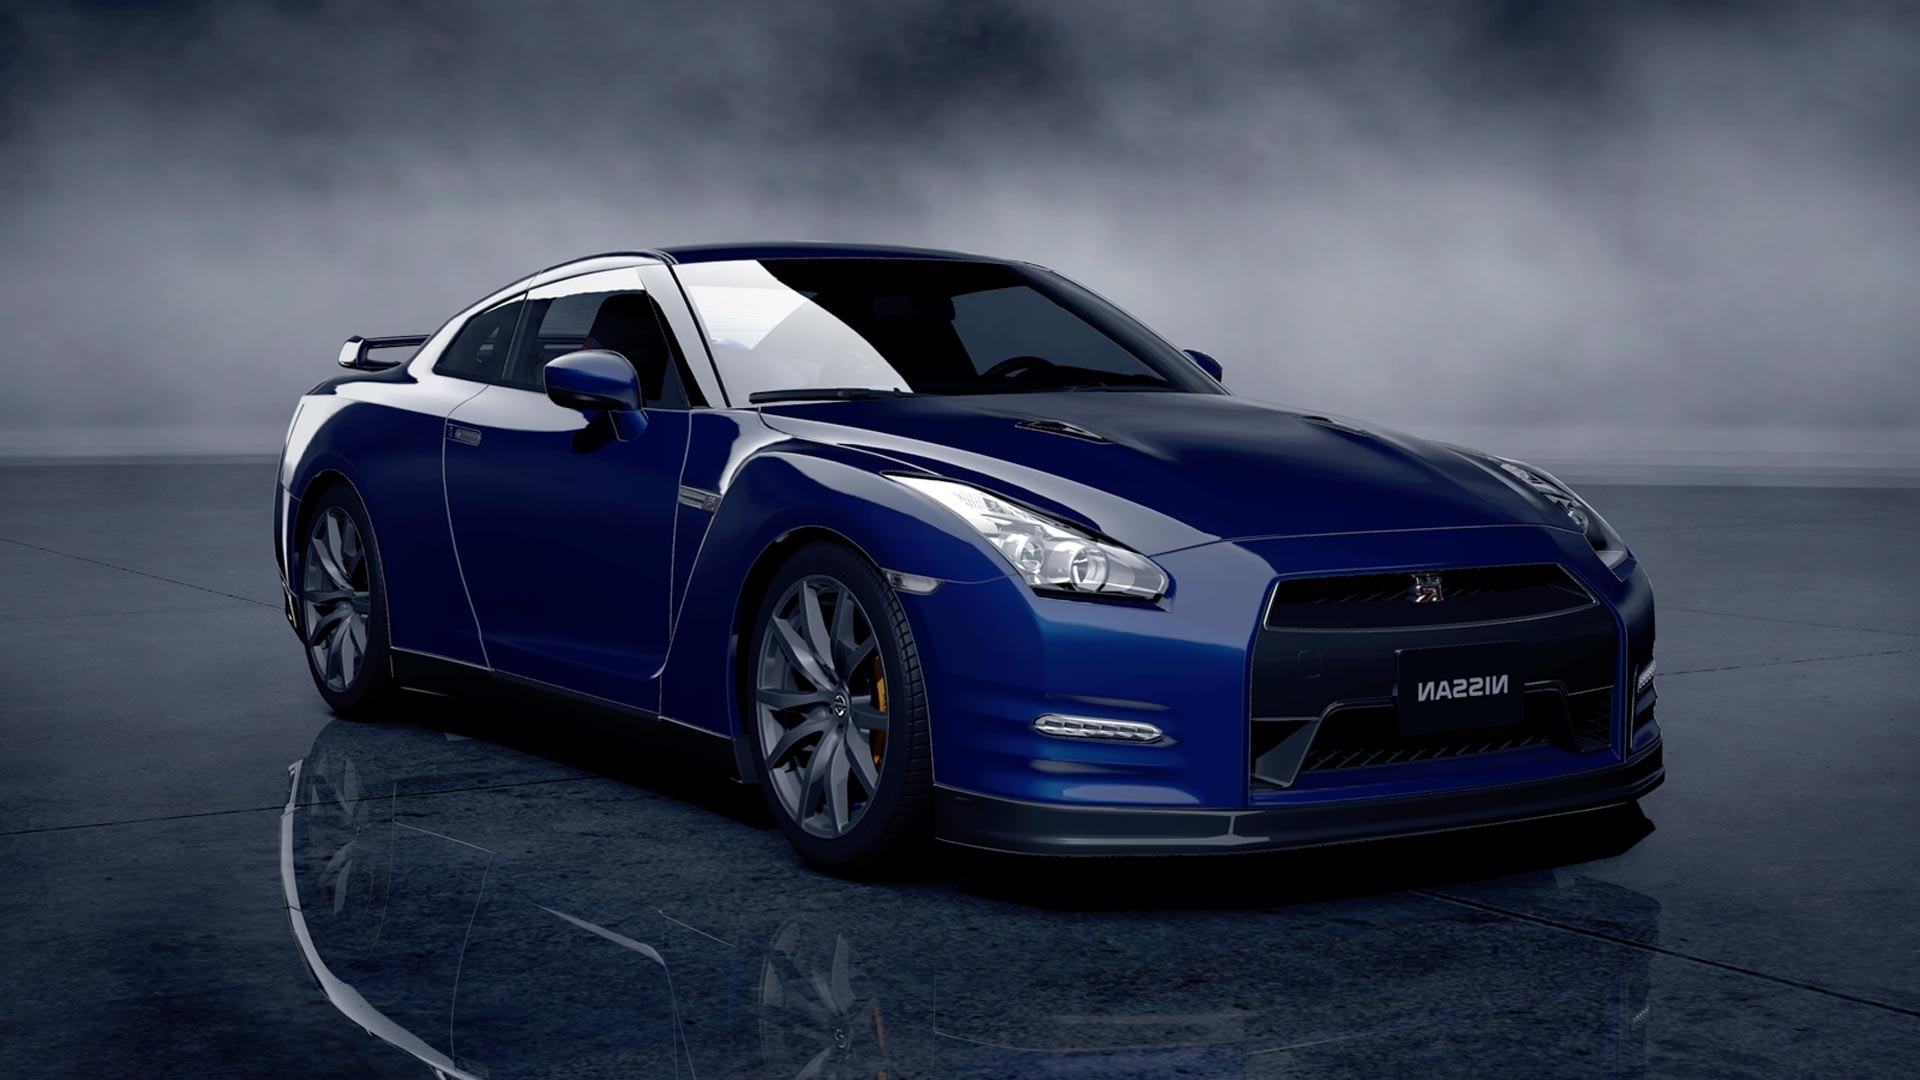 nissan gtr r35 hd wallpapers (76+ pictures)